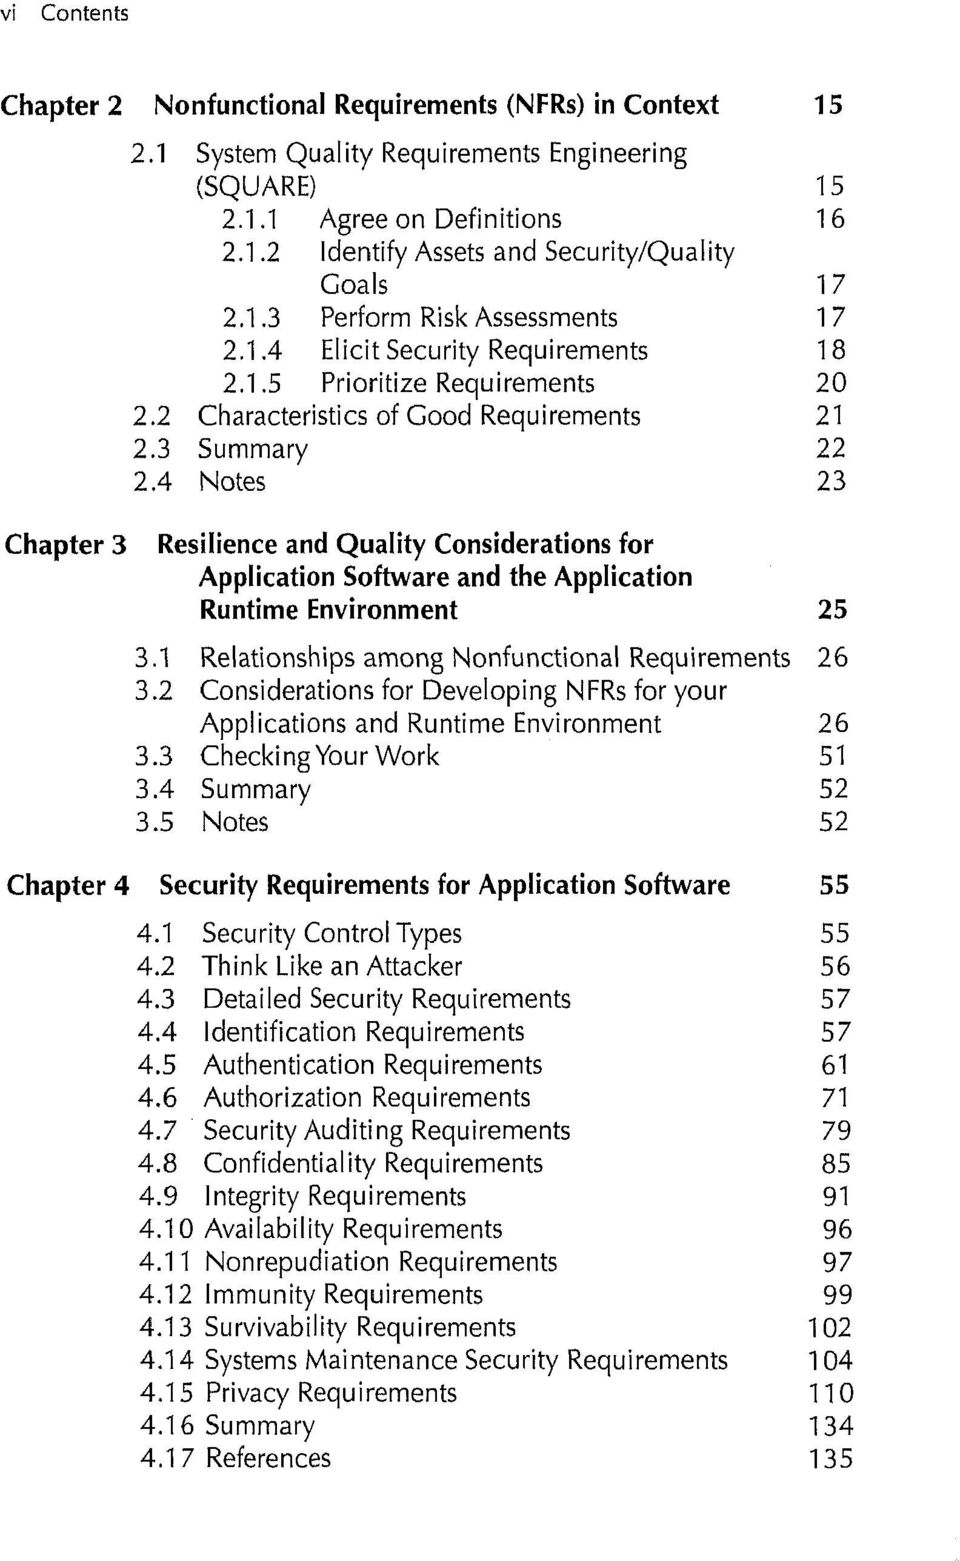 4 Notes 23 Chapter 3 Resilience and Quality Considerations for Application Software and the Application Runtime Environment 25 3.1 Relationships among Nonfunctional Requirements 26 3.